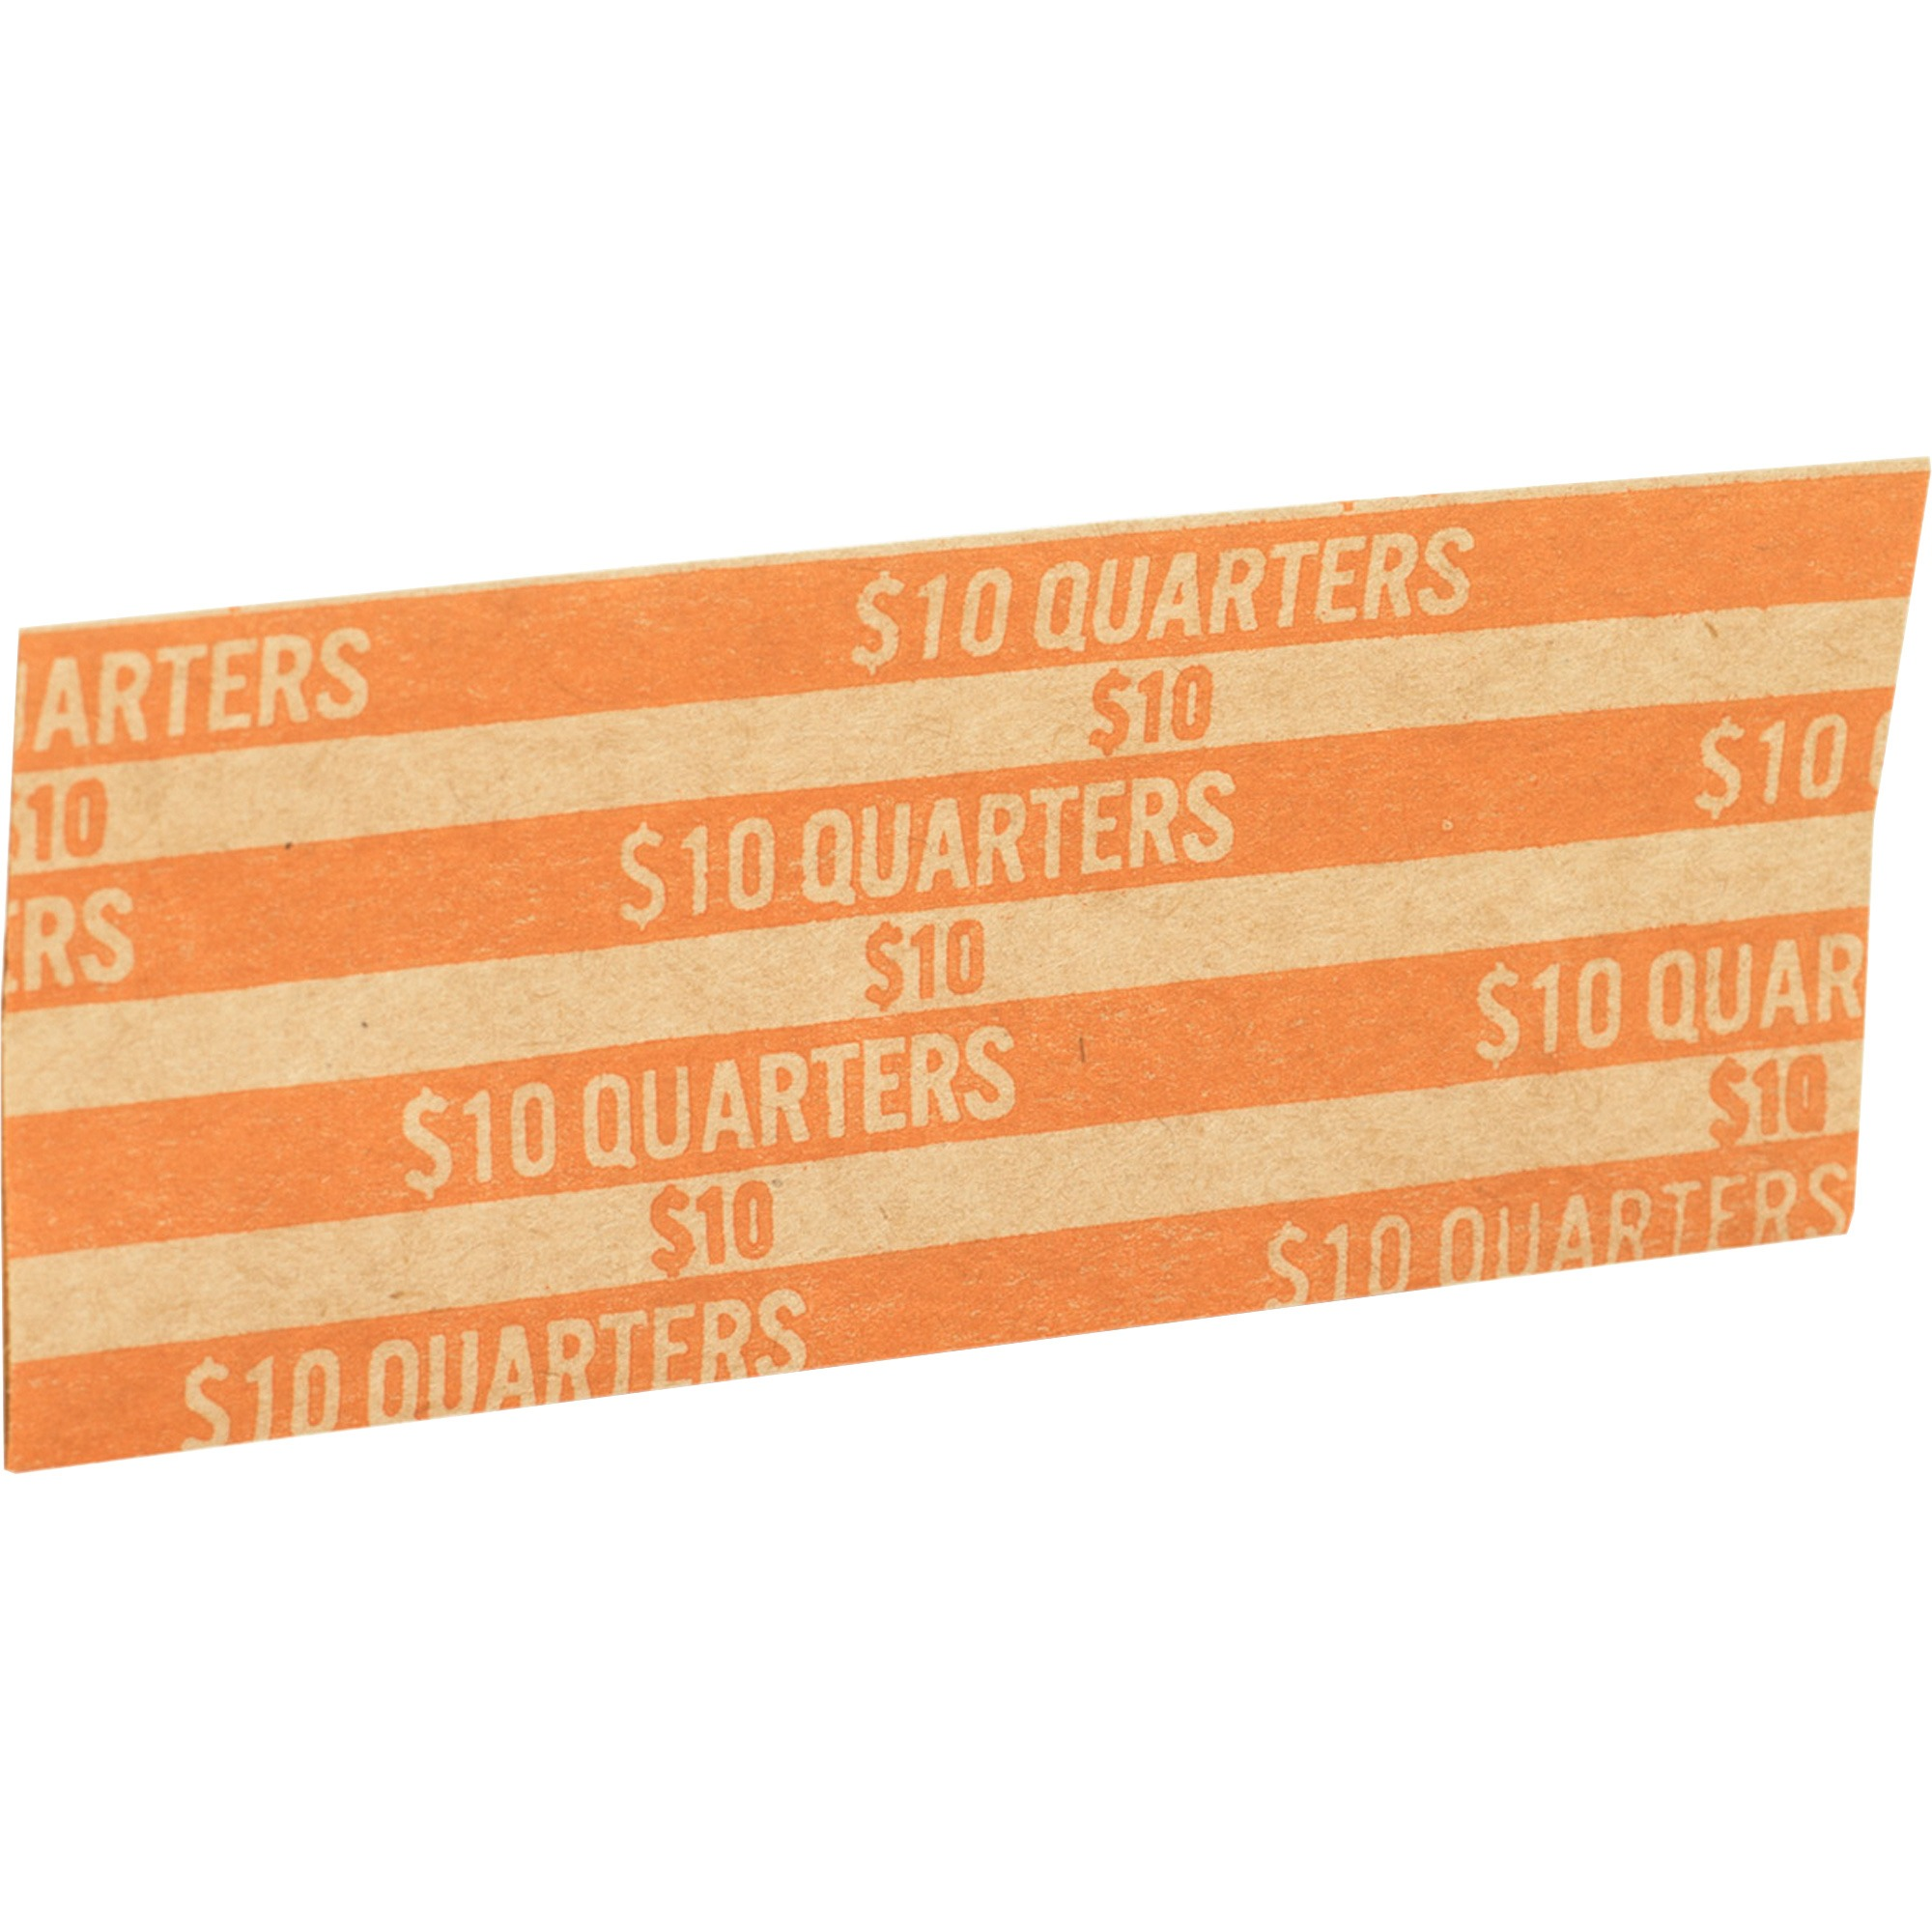 Sparco Flat Coin Wrappers, Quarters, 1000 per Box